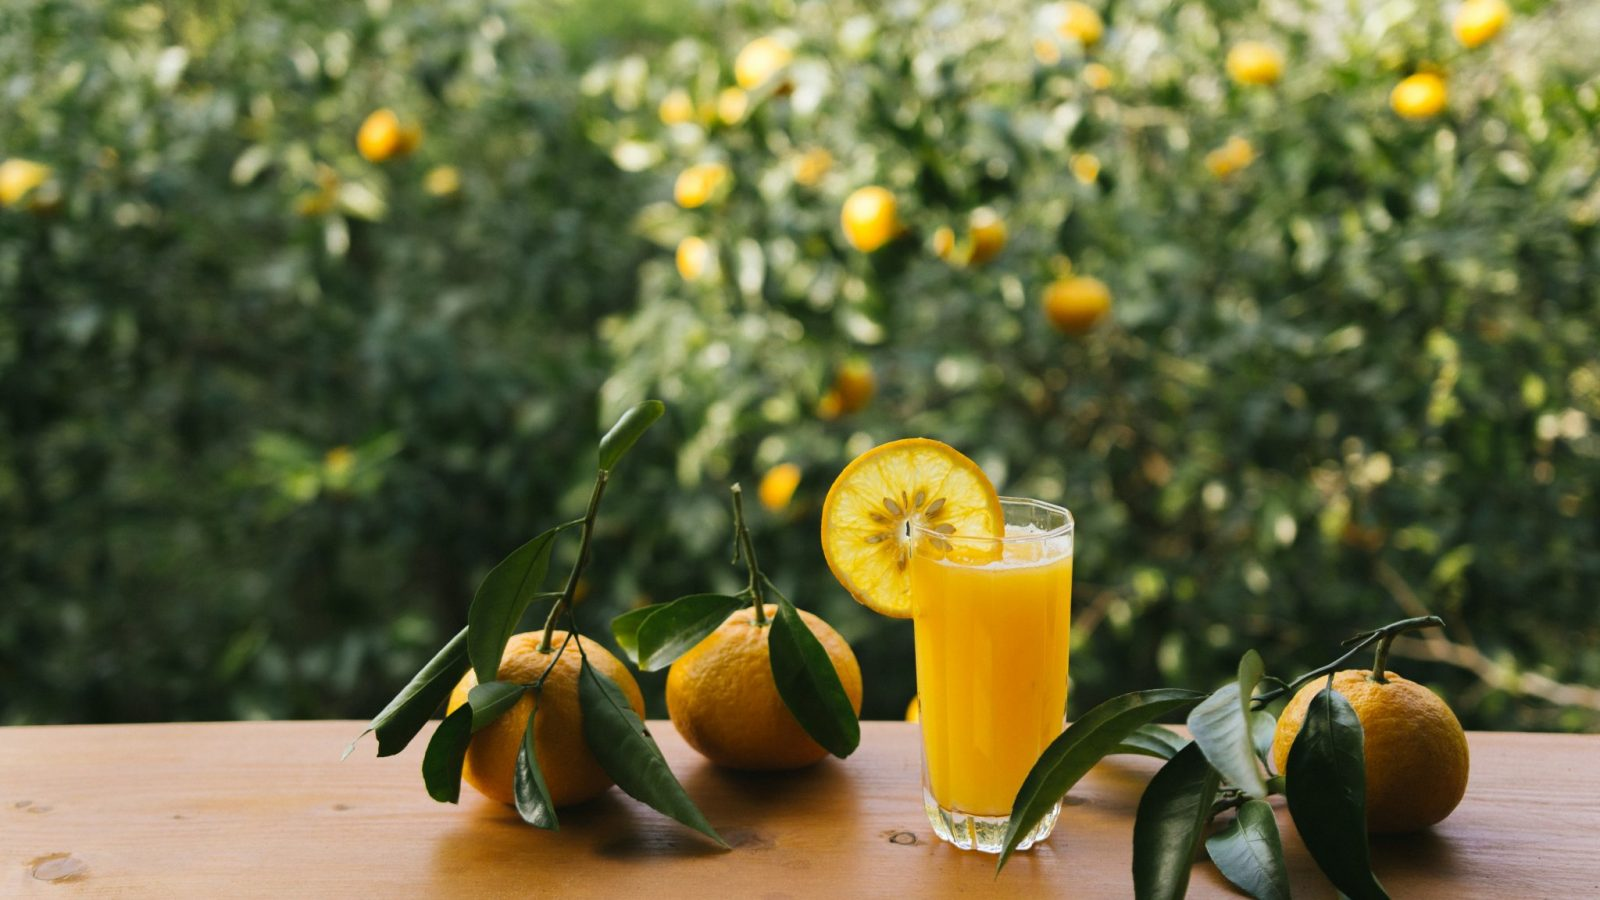 Freshly squeezed orange juice at the cafe